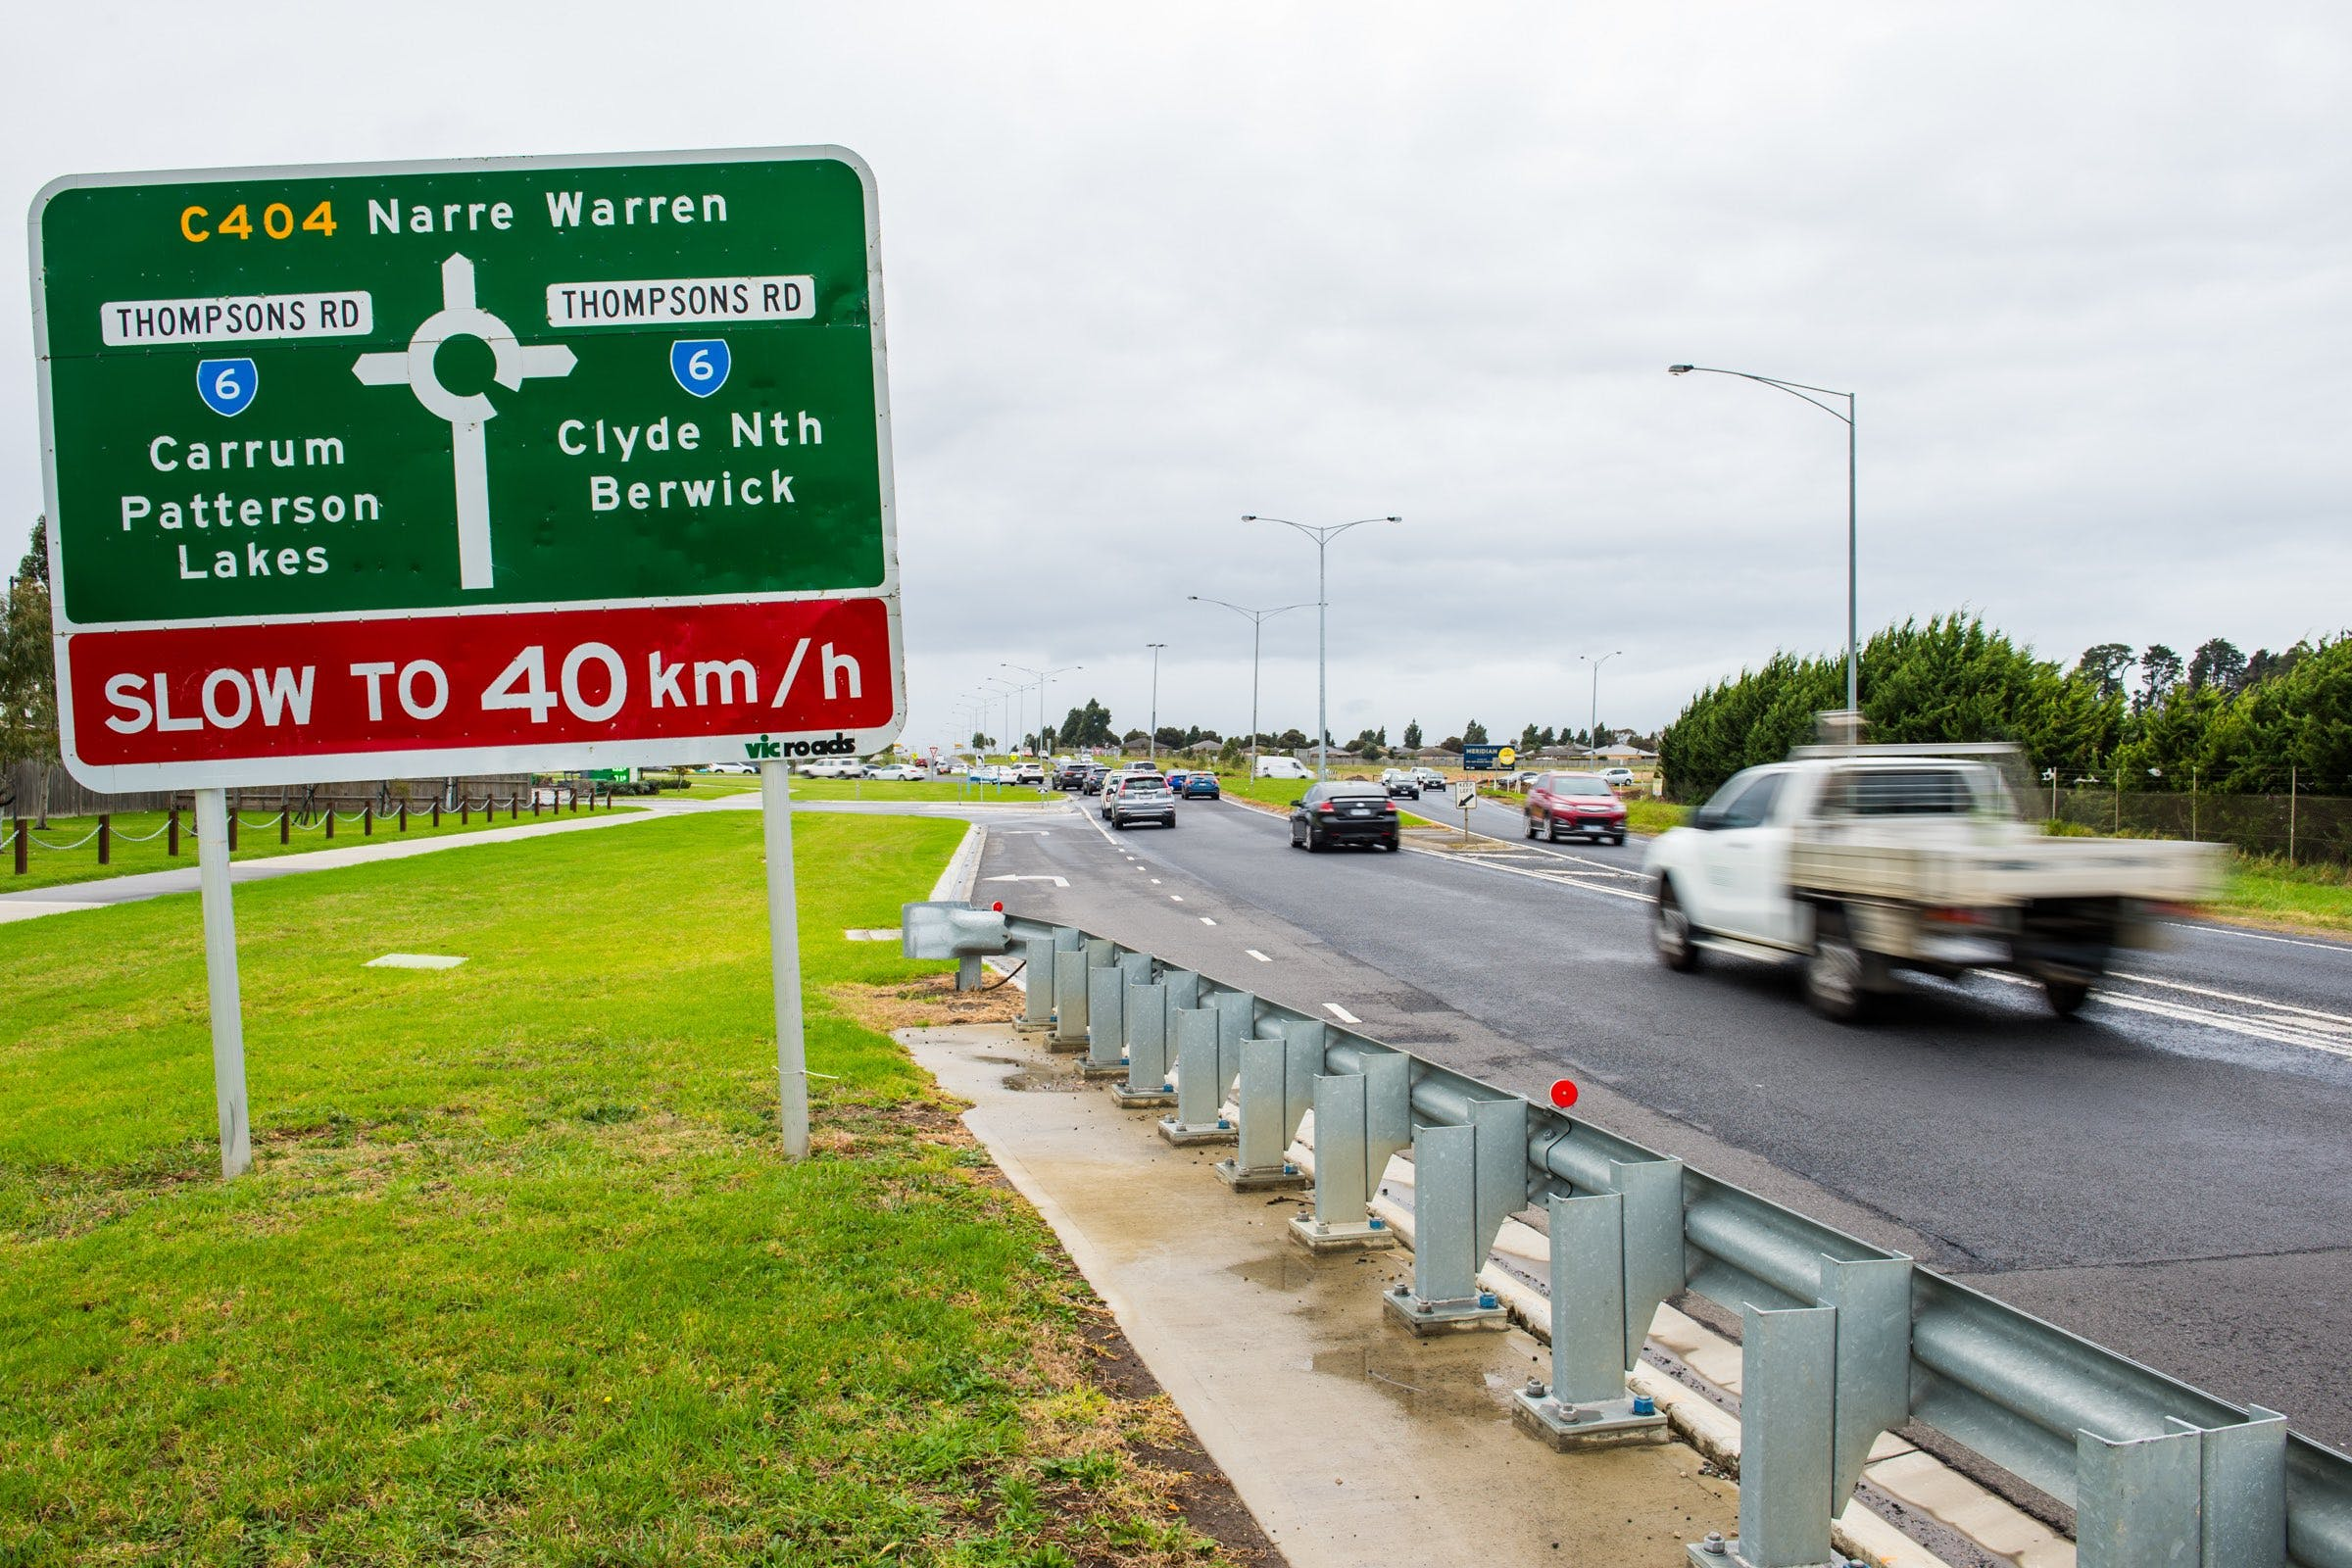 Narre Warren-Cranbourne Road, Cranbourne